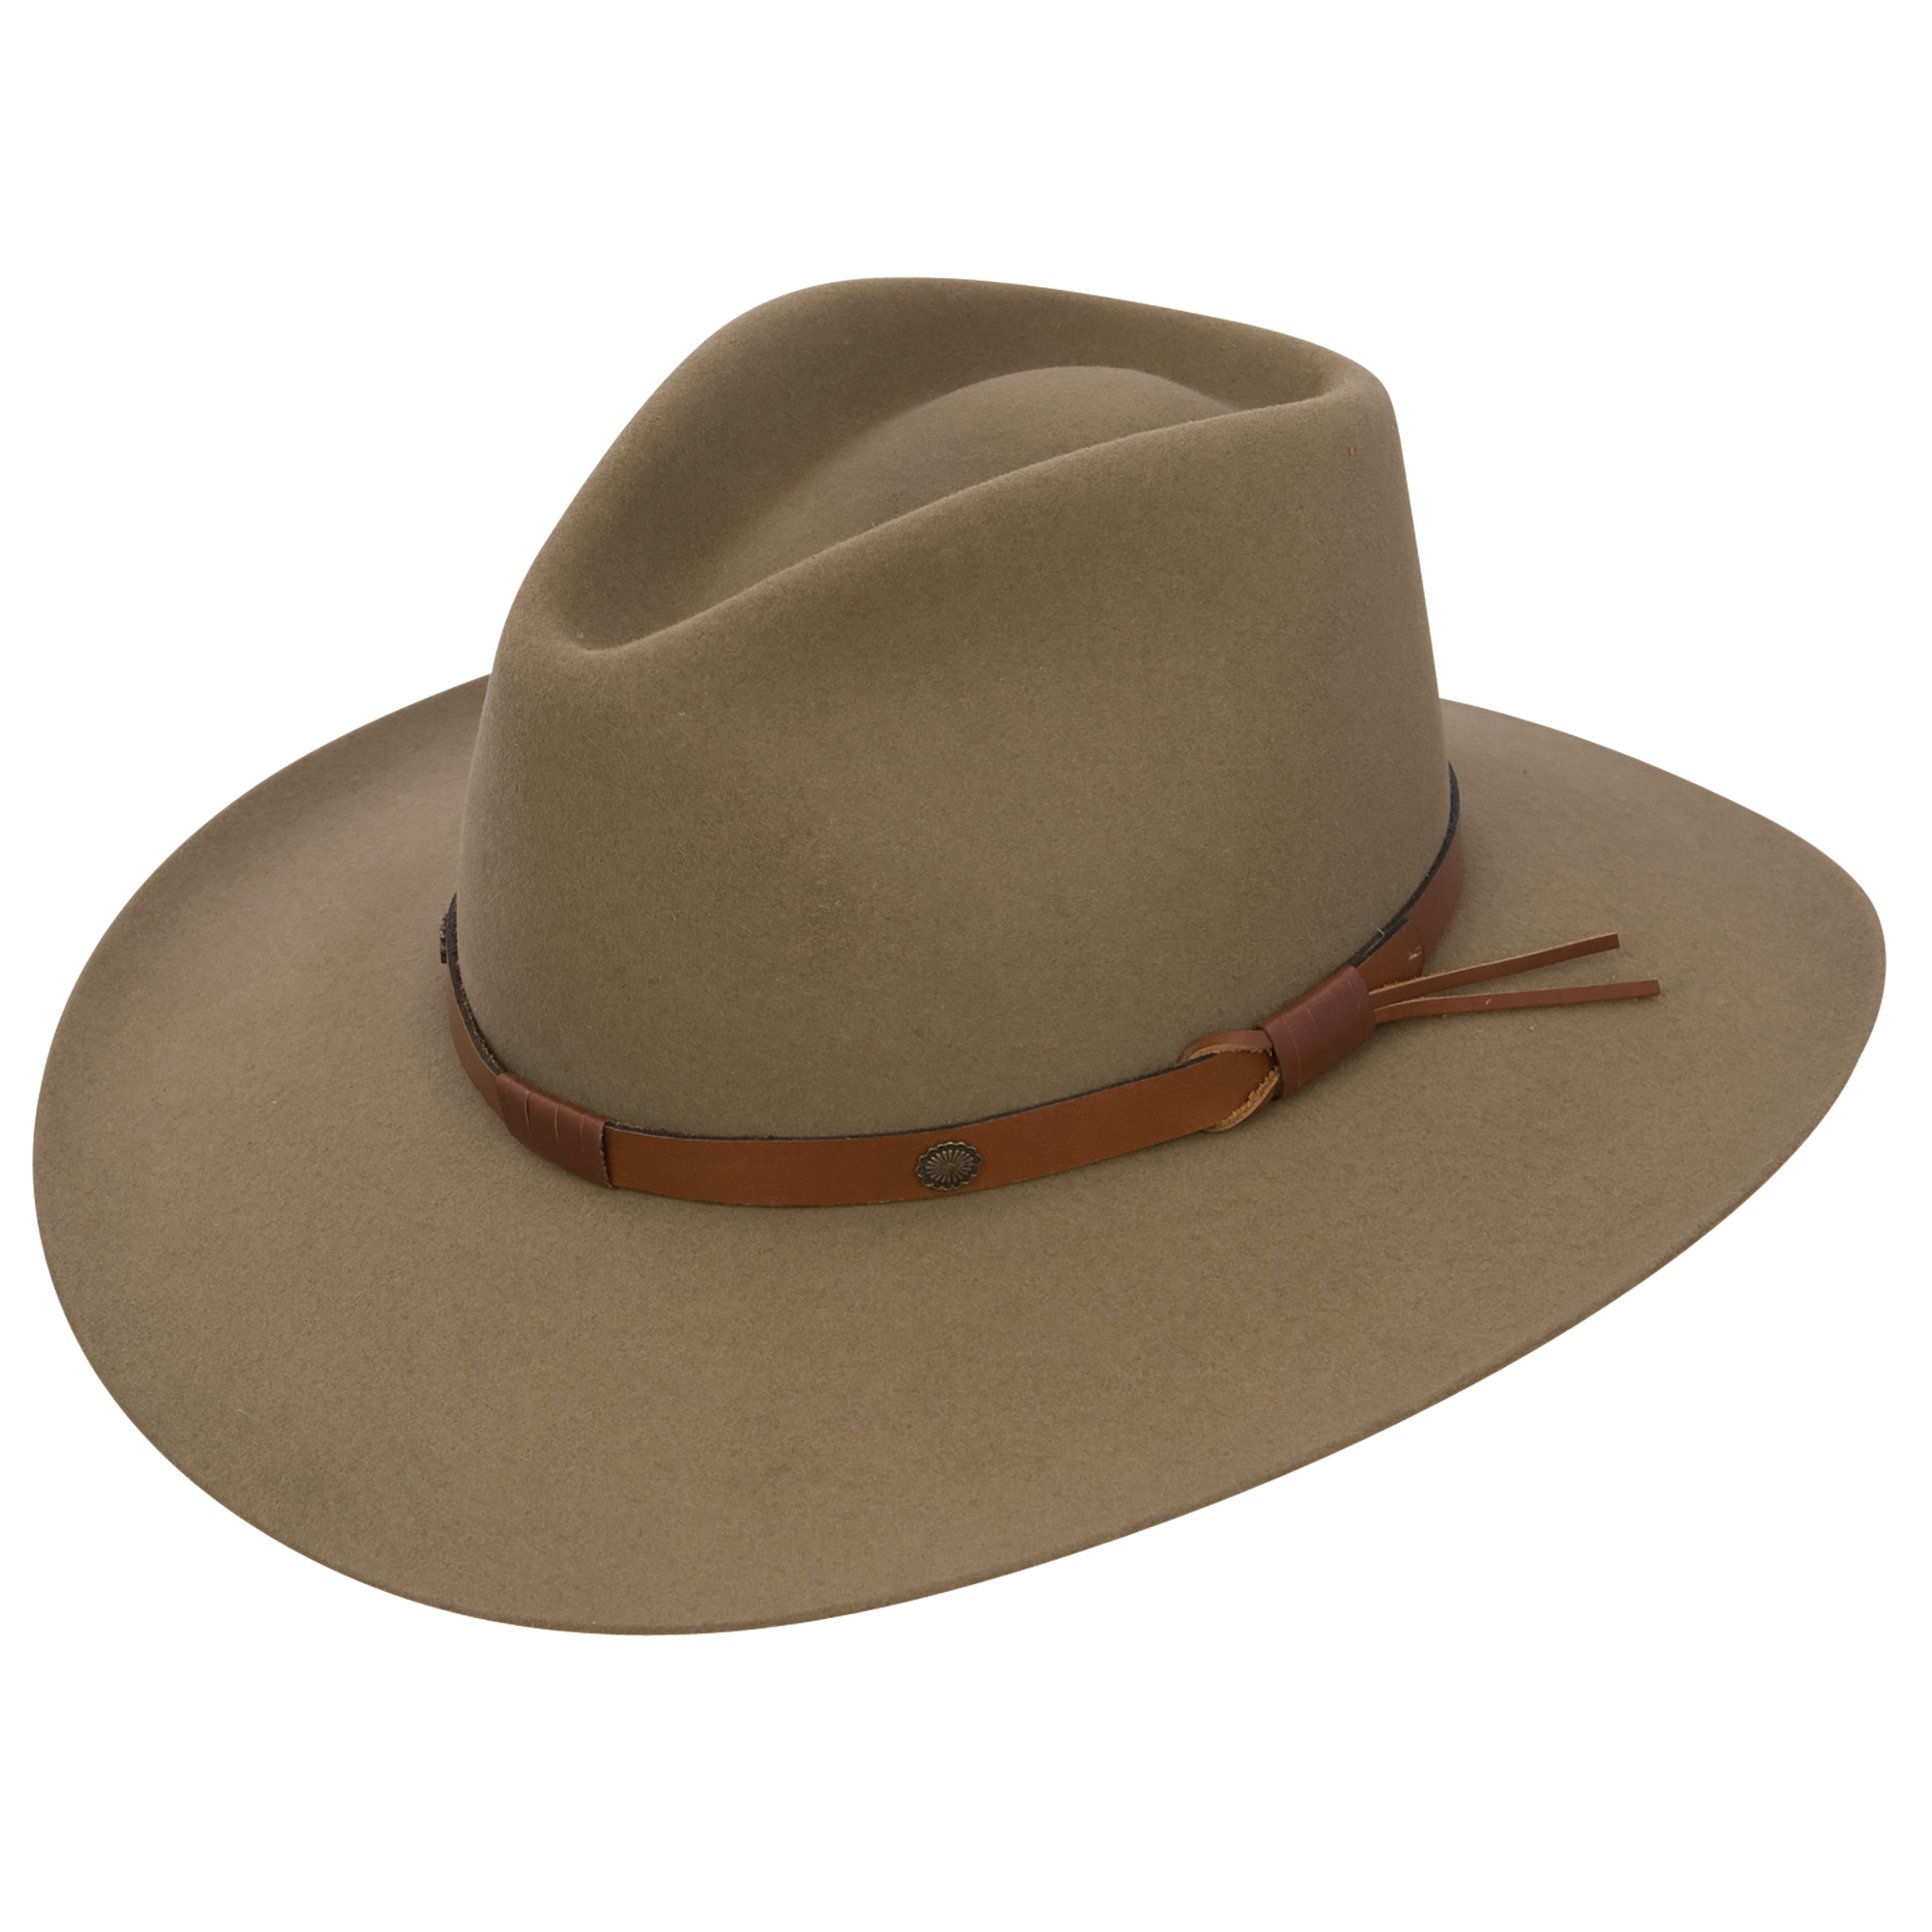 Stetson Catera 5X Felt Hat. Hover to zoom fe97d00df0e1